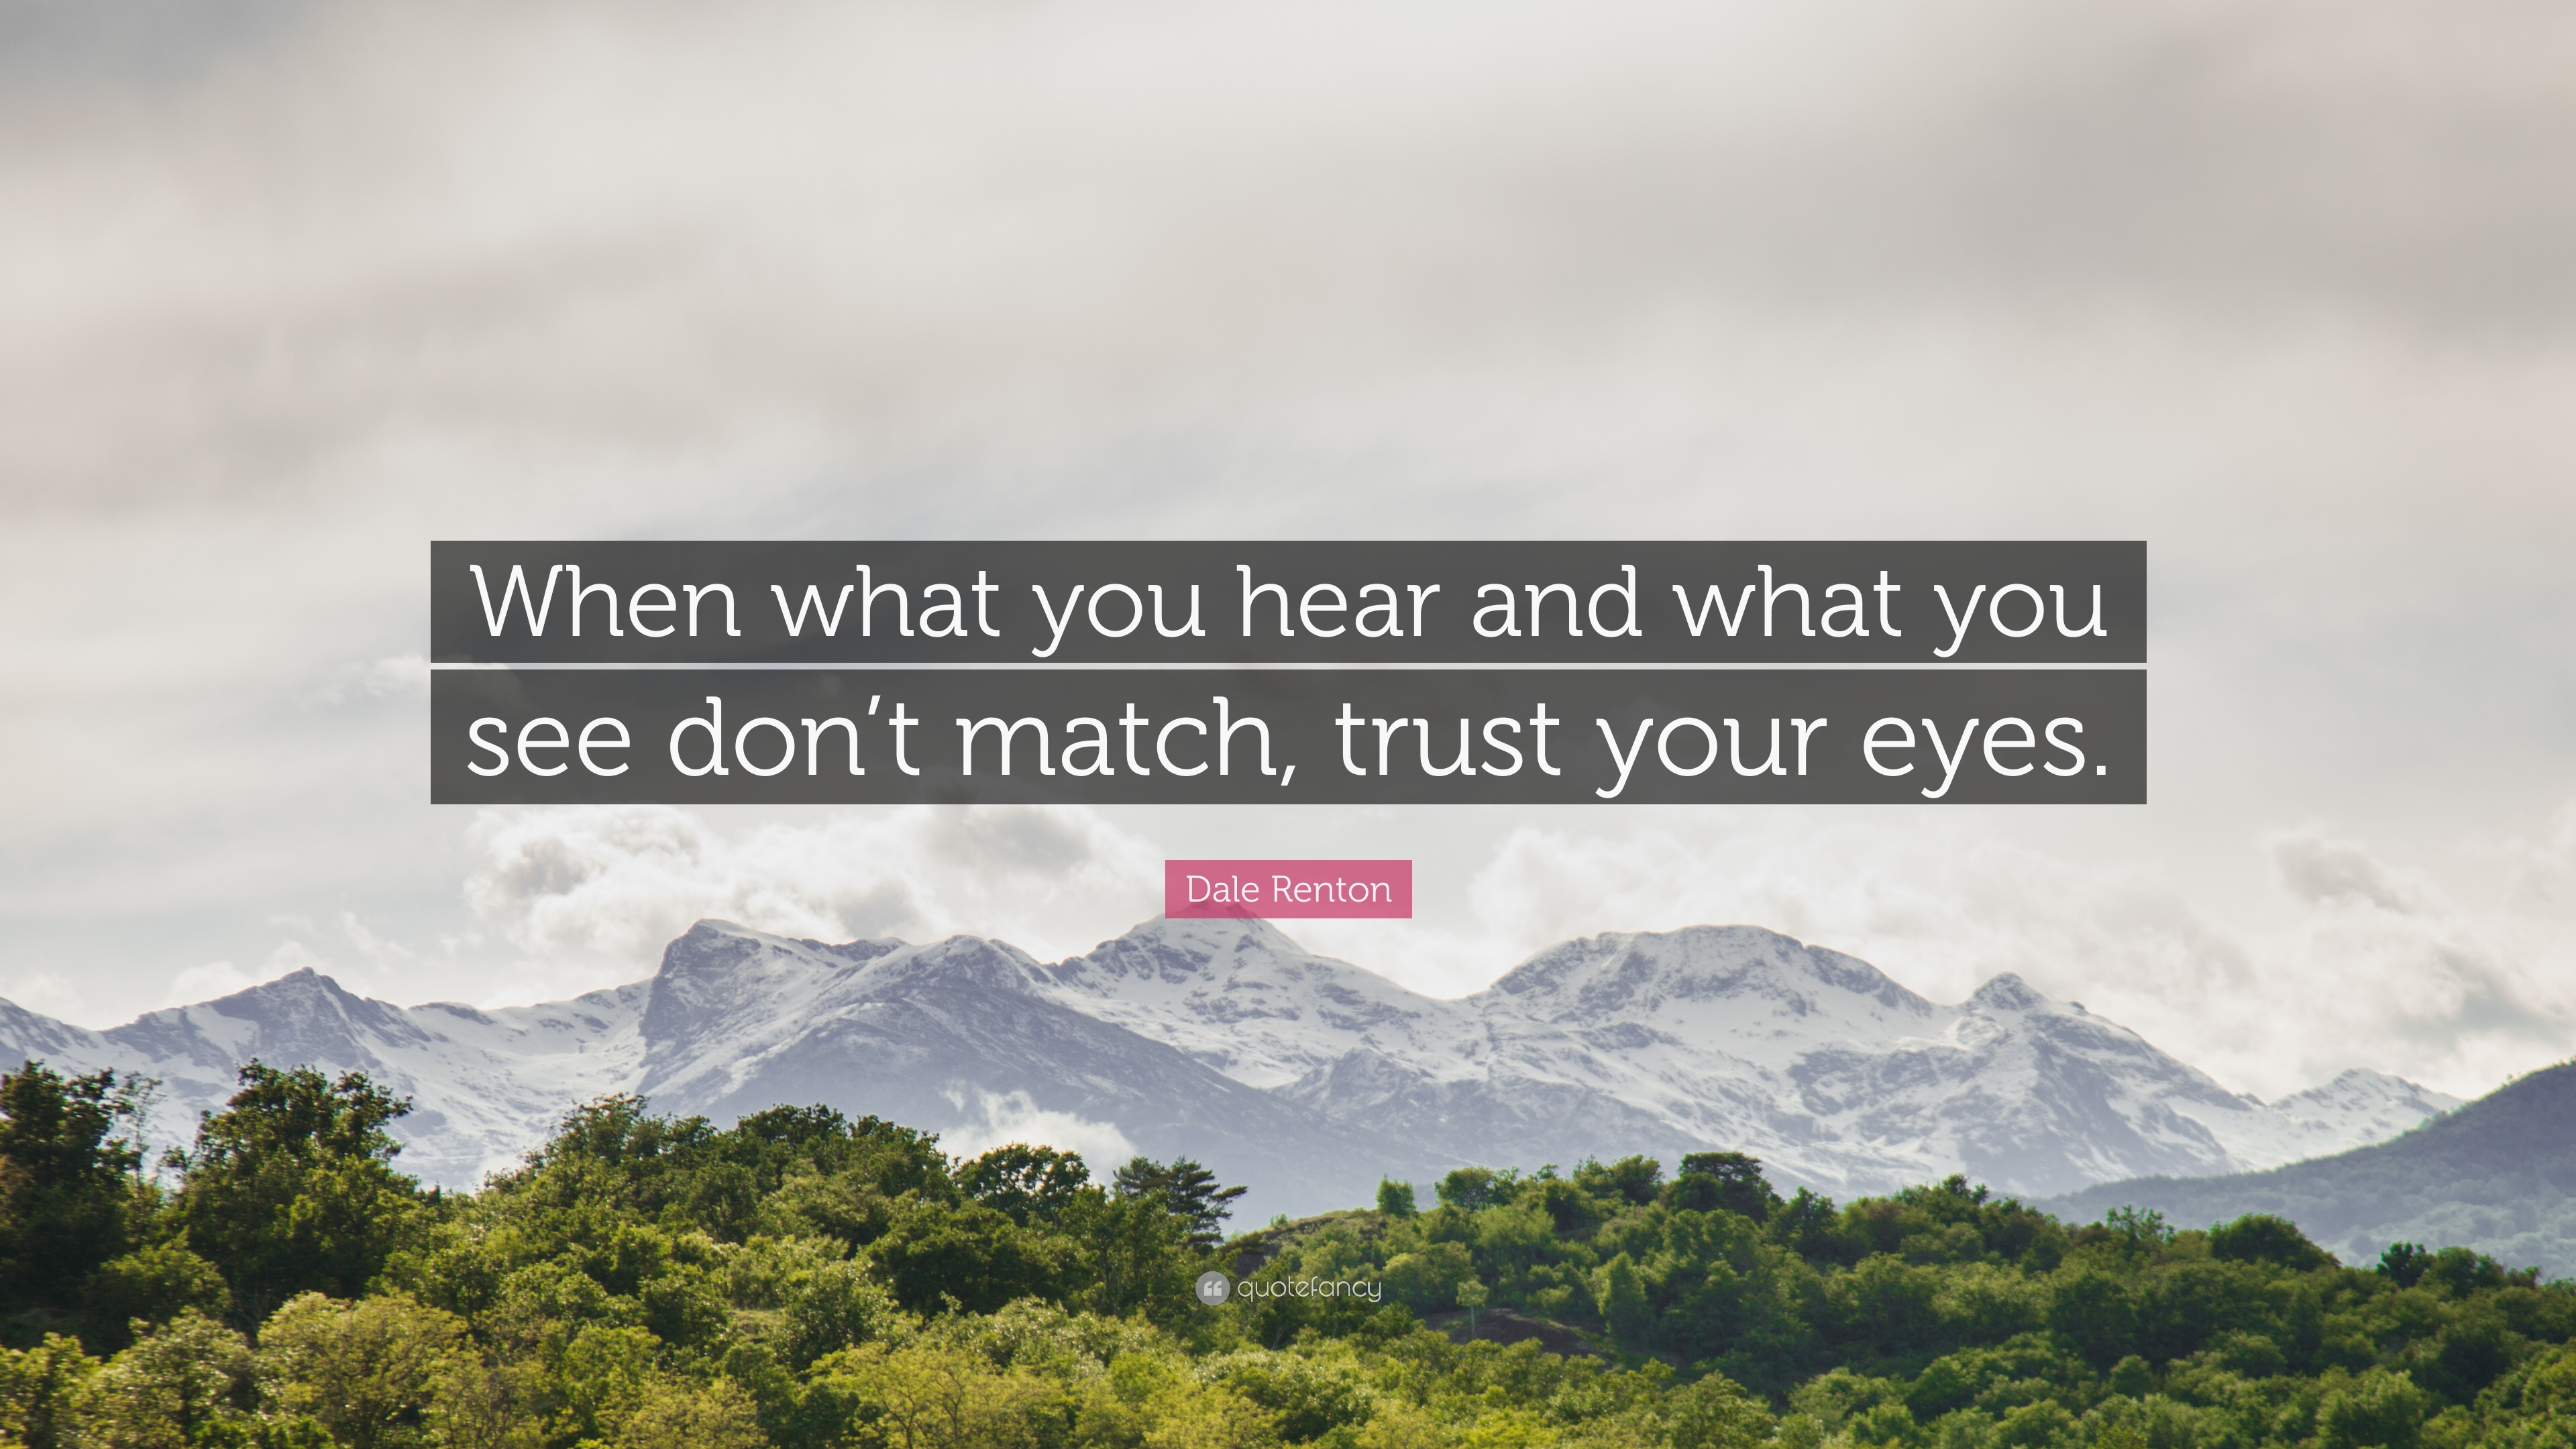 Dale Renton Quote: U201cWhen What You Hear And What You See Donu0027t